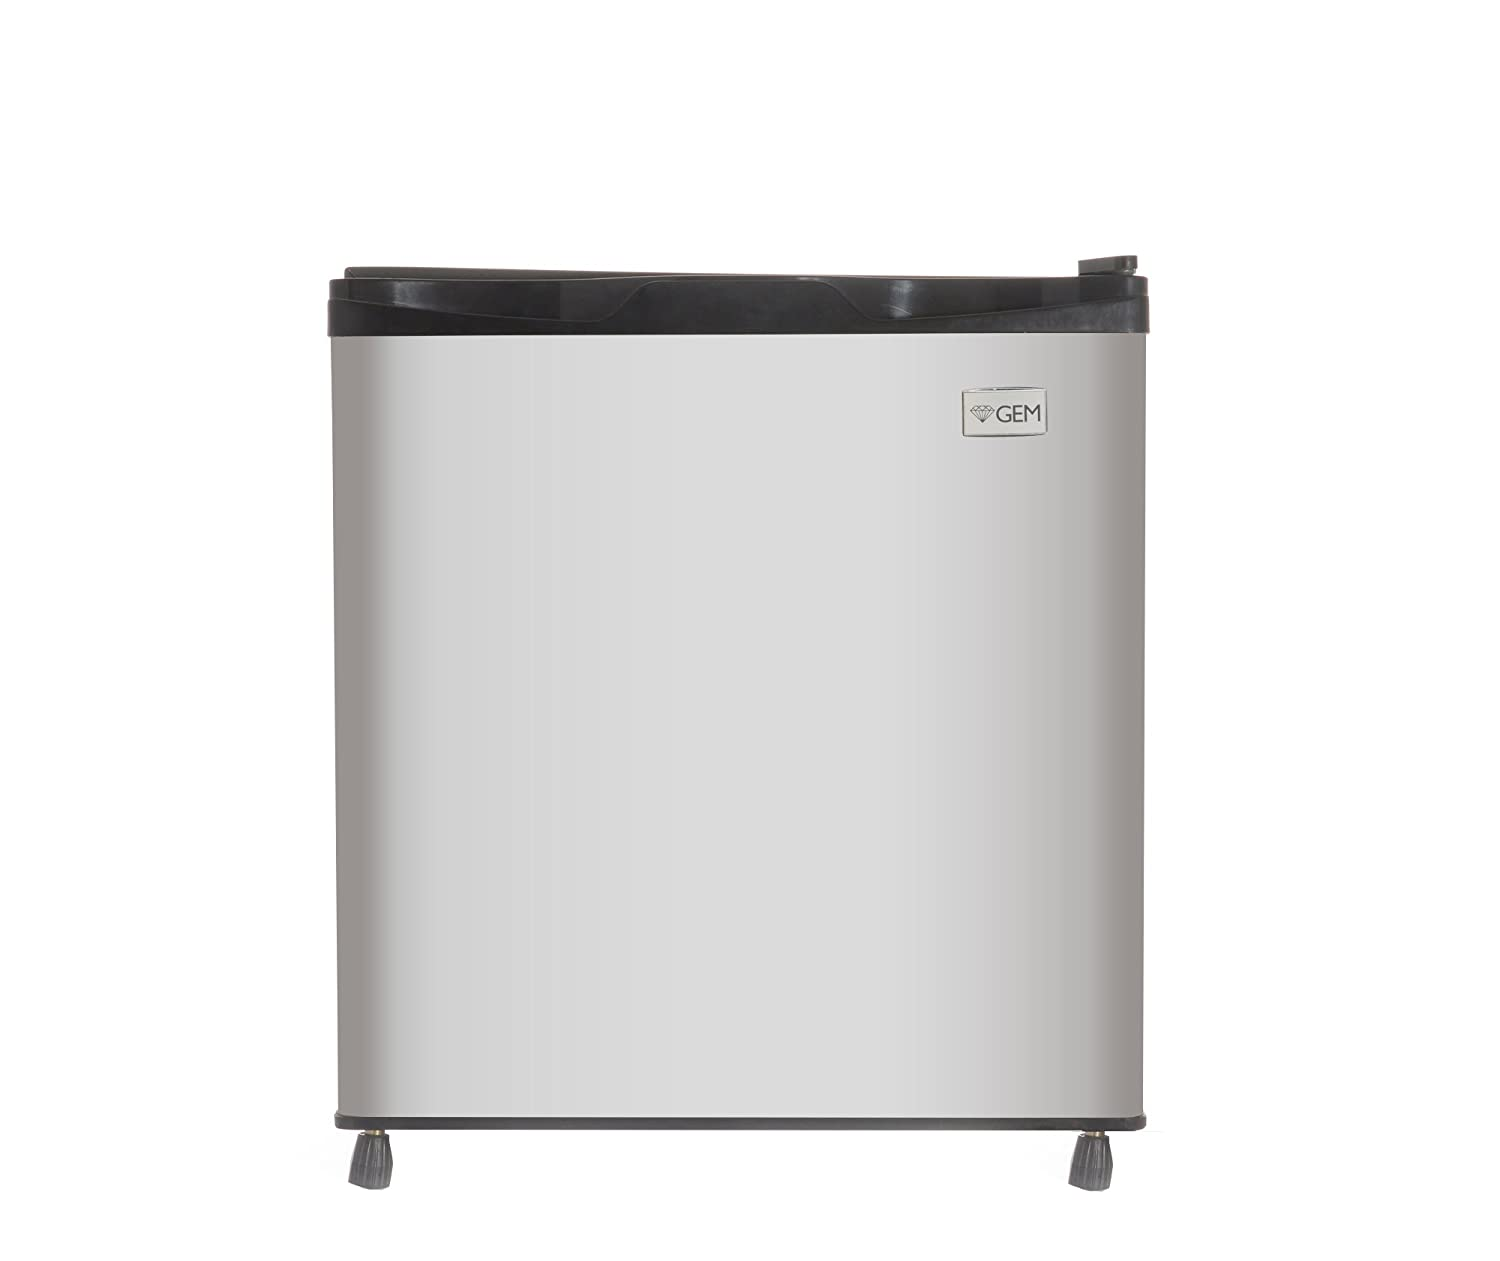 Gem 50 L Direct Cool Single Door Refrigerator Grdn 70dgwc